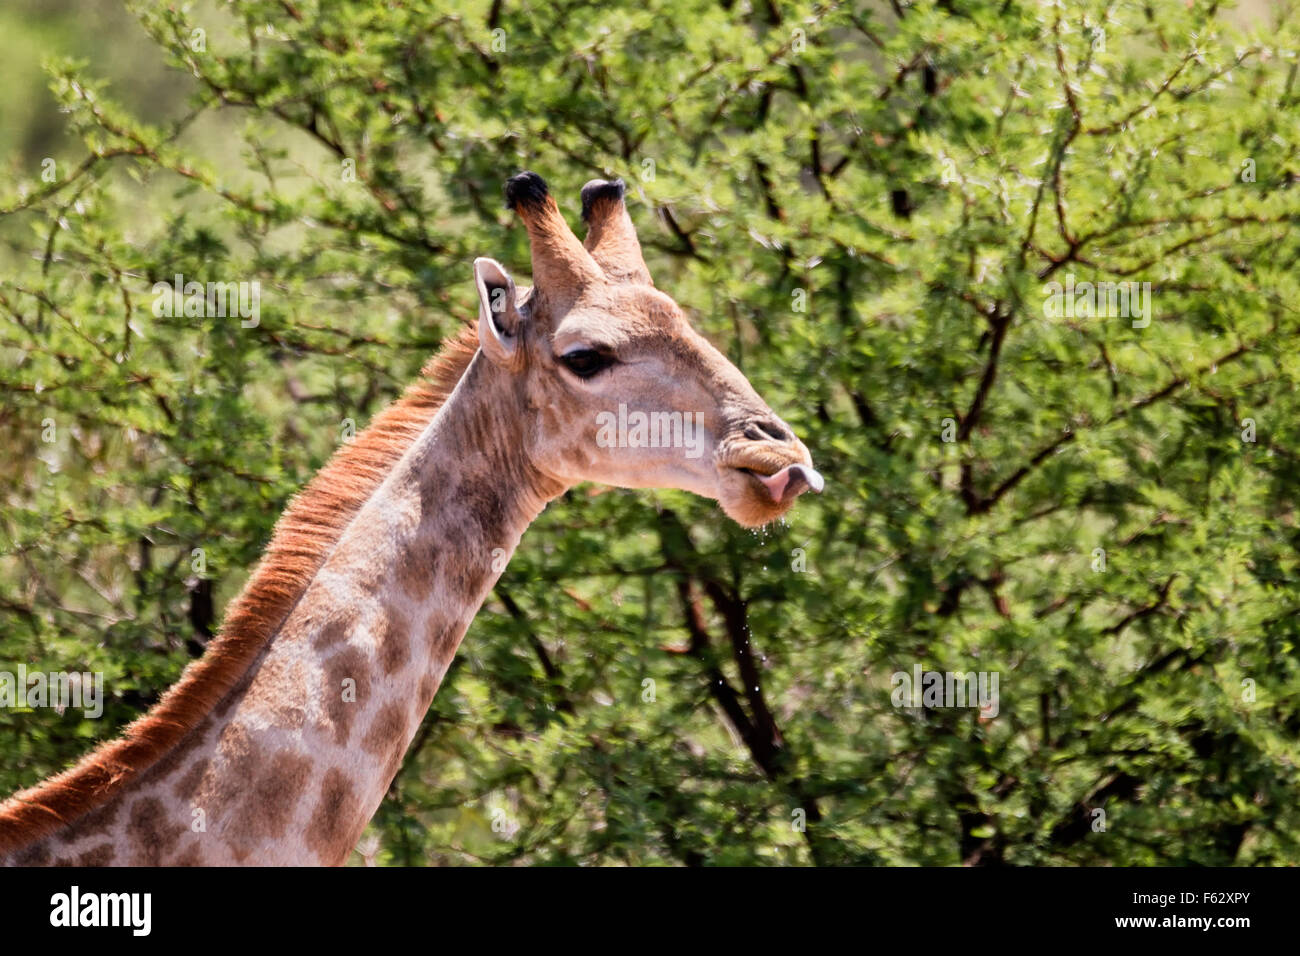 Giraffe Tong Out - Stock Image